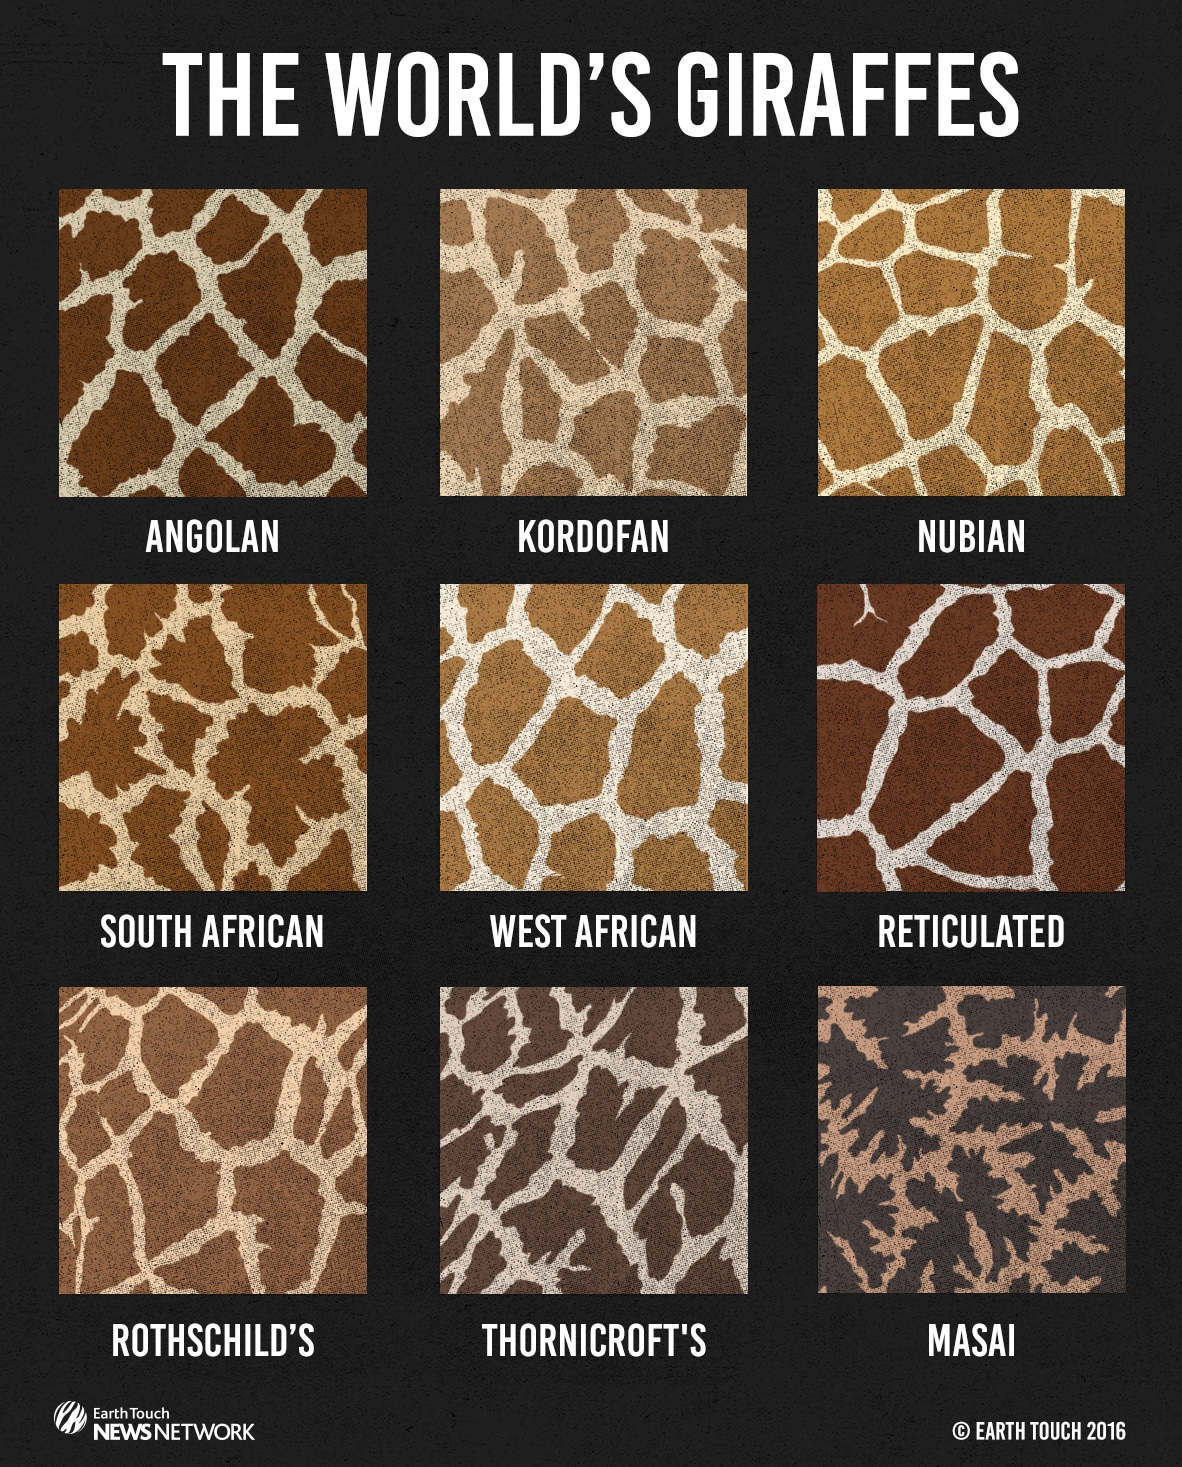 skin patterns of the worlds giraffes